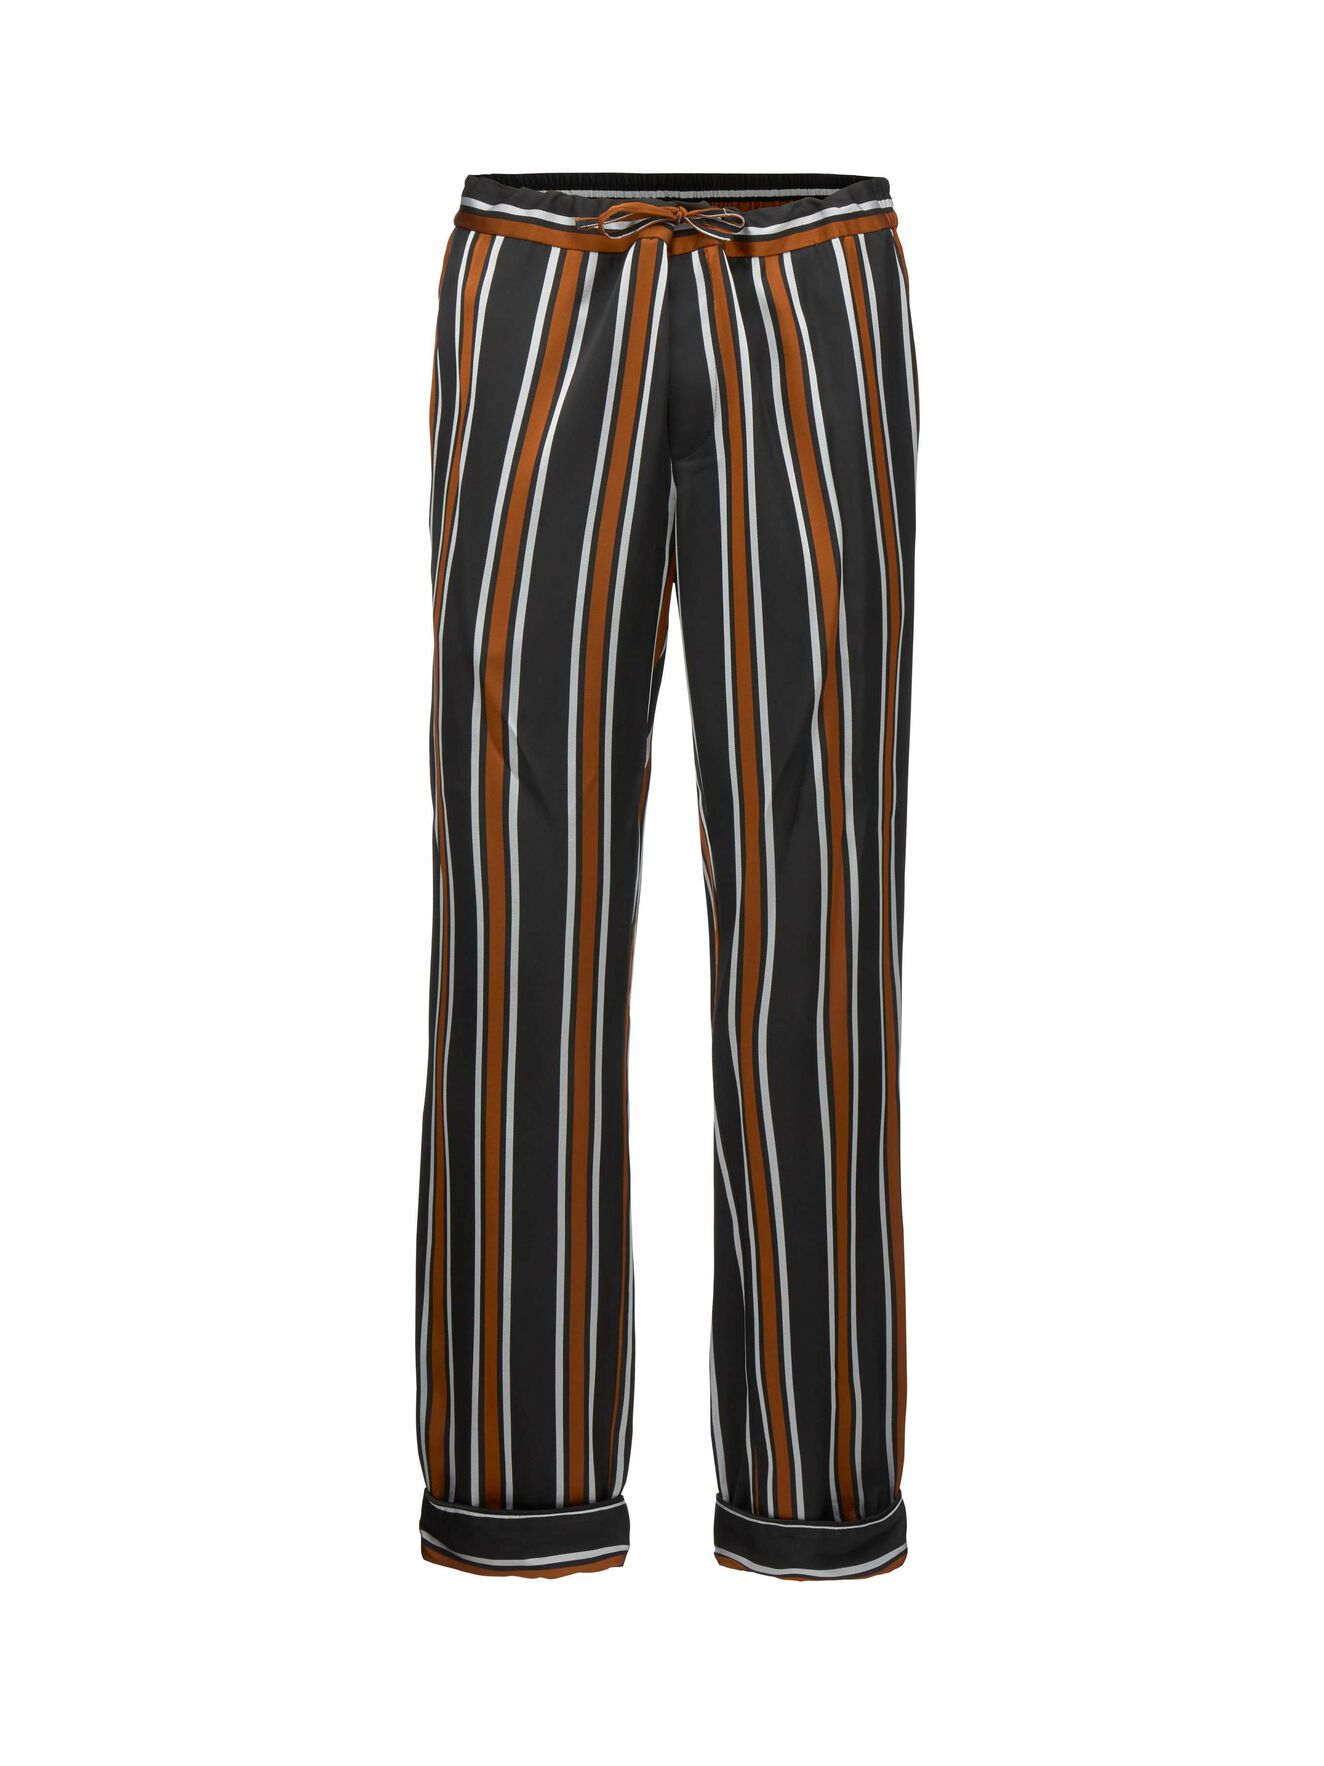 Innes Trousers in Black from Tiger of Sweden